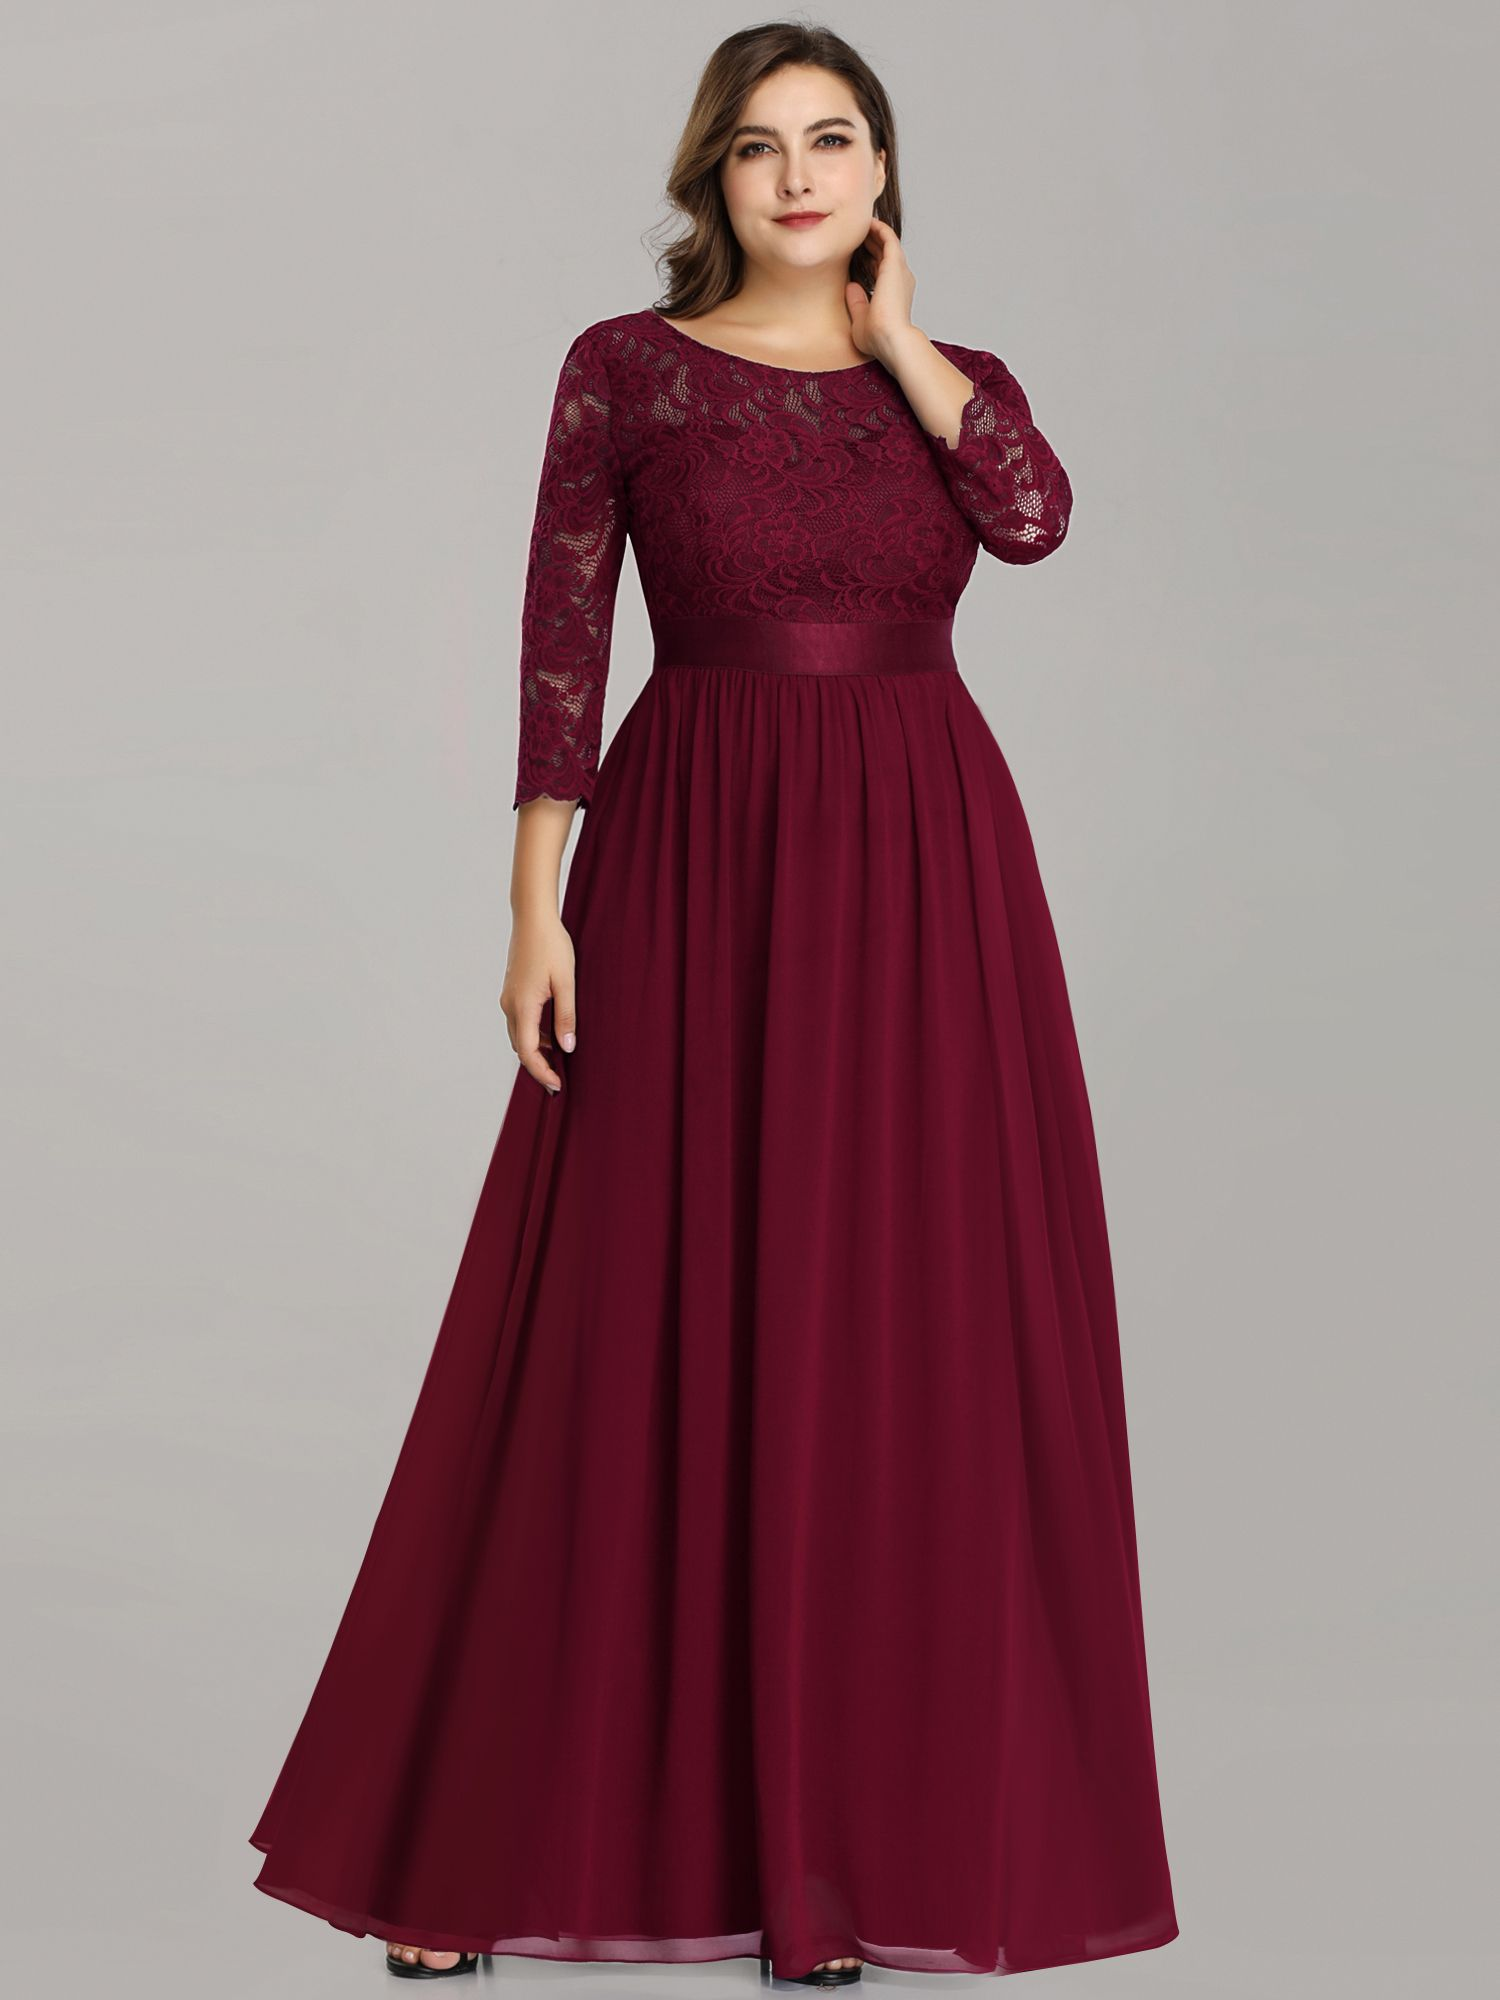 Ever Pretty Ever Pretty Womens Vintage Floral Lace Long Sleeve For Long Sleeve Bridesmaid Dress Burgundy Bridesmaid Dresses Long Bridesmaid Dresses Plus Size [ 2000 x 1500 Pixel ]